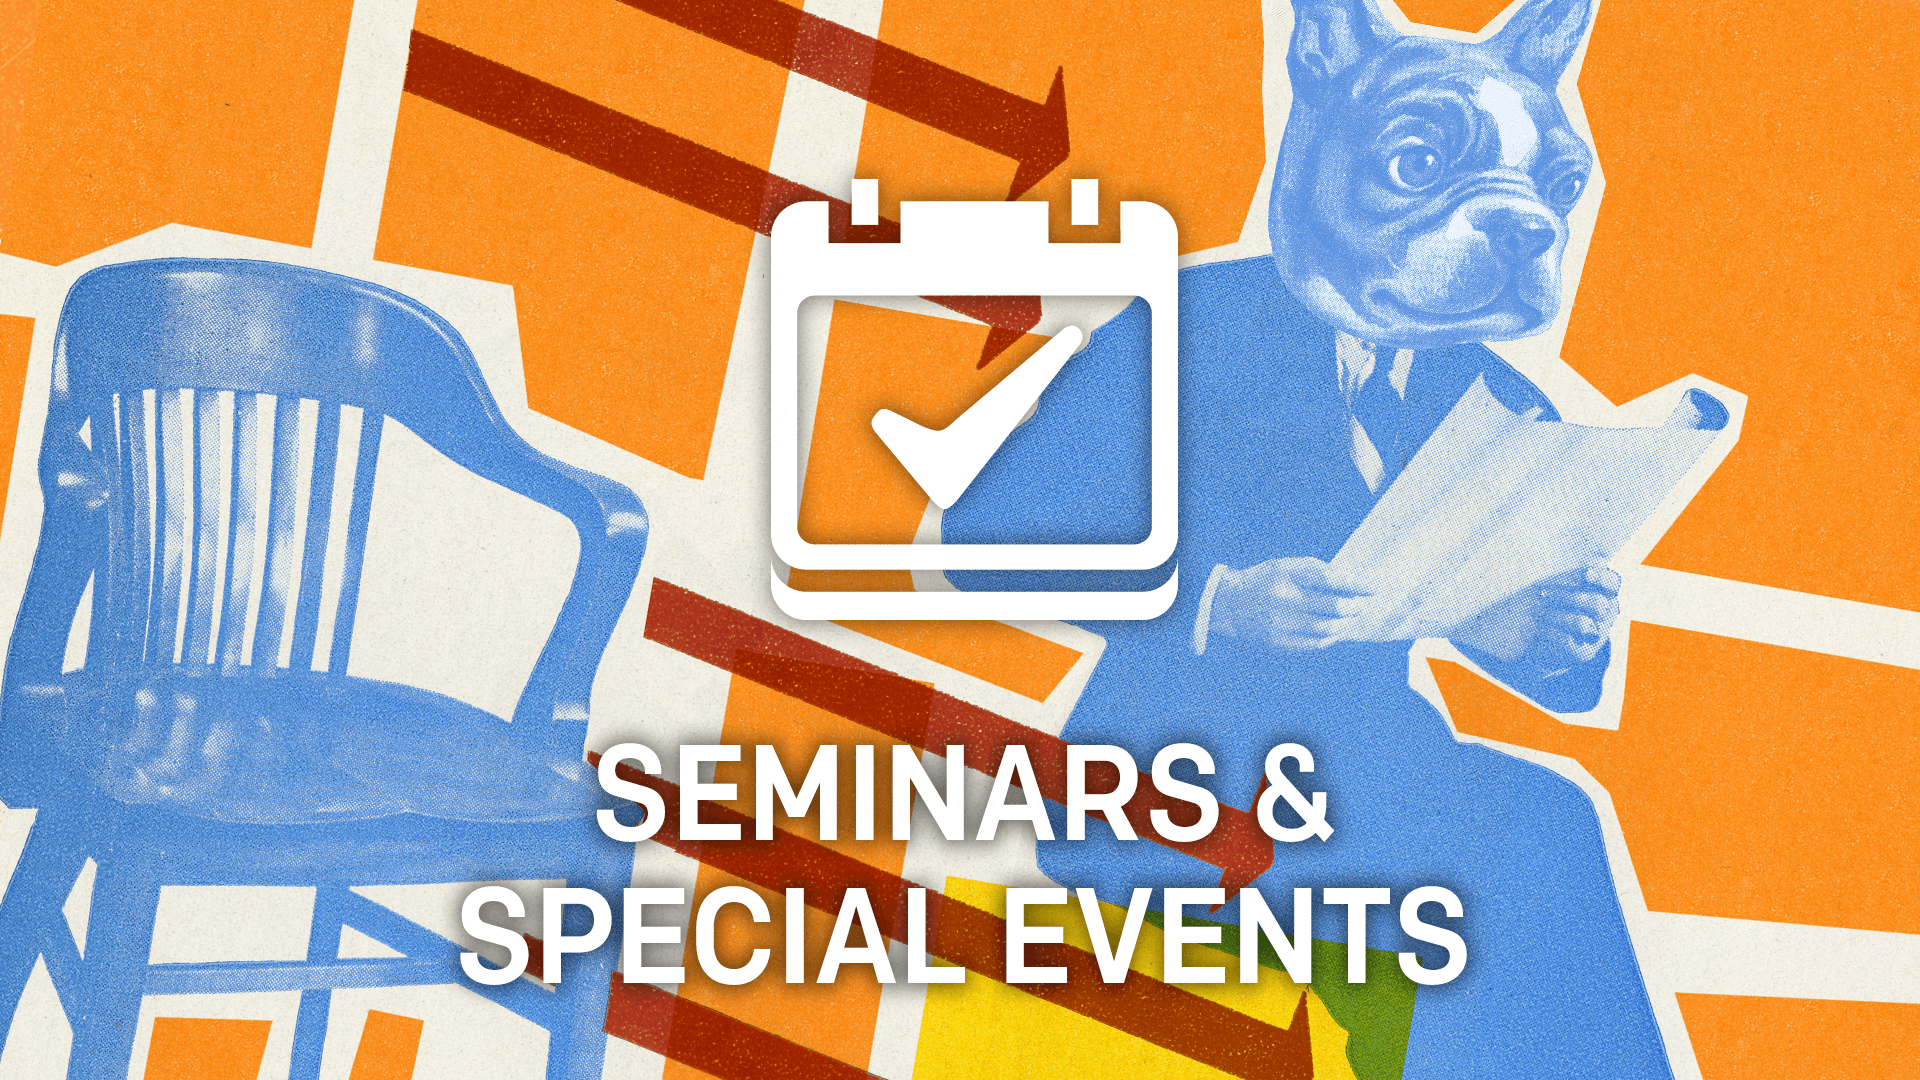 Seminars, Special Events & Workshops